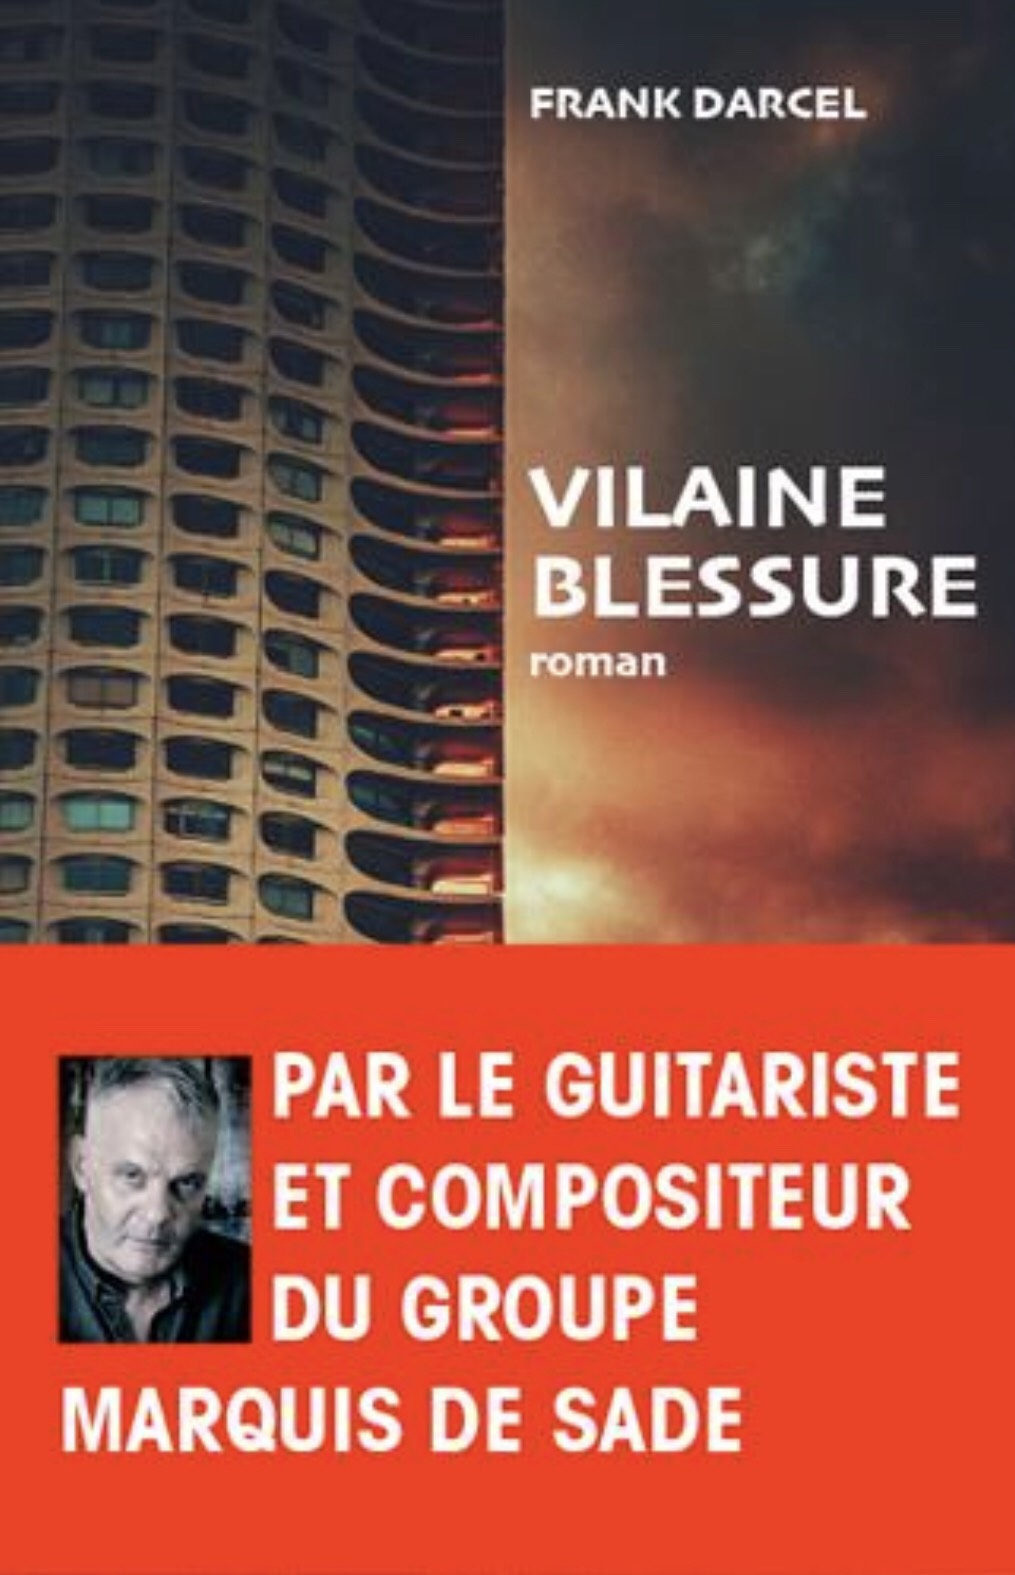 Cover of Vilaine Blessure, Frank Darcel's 4th novel